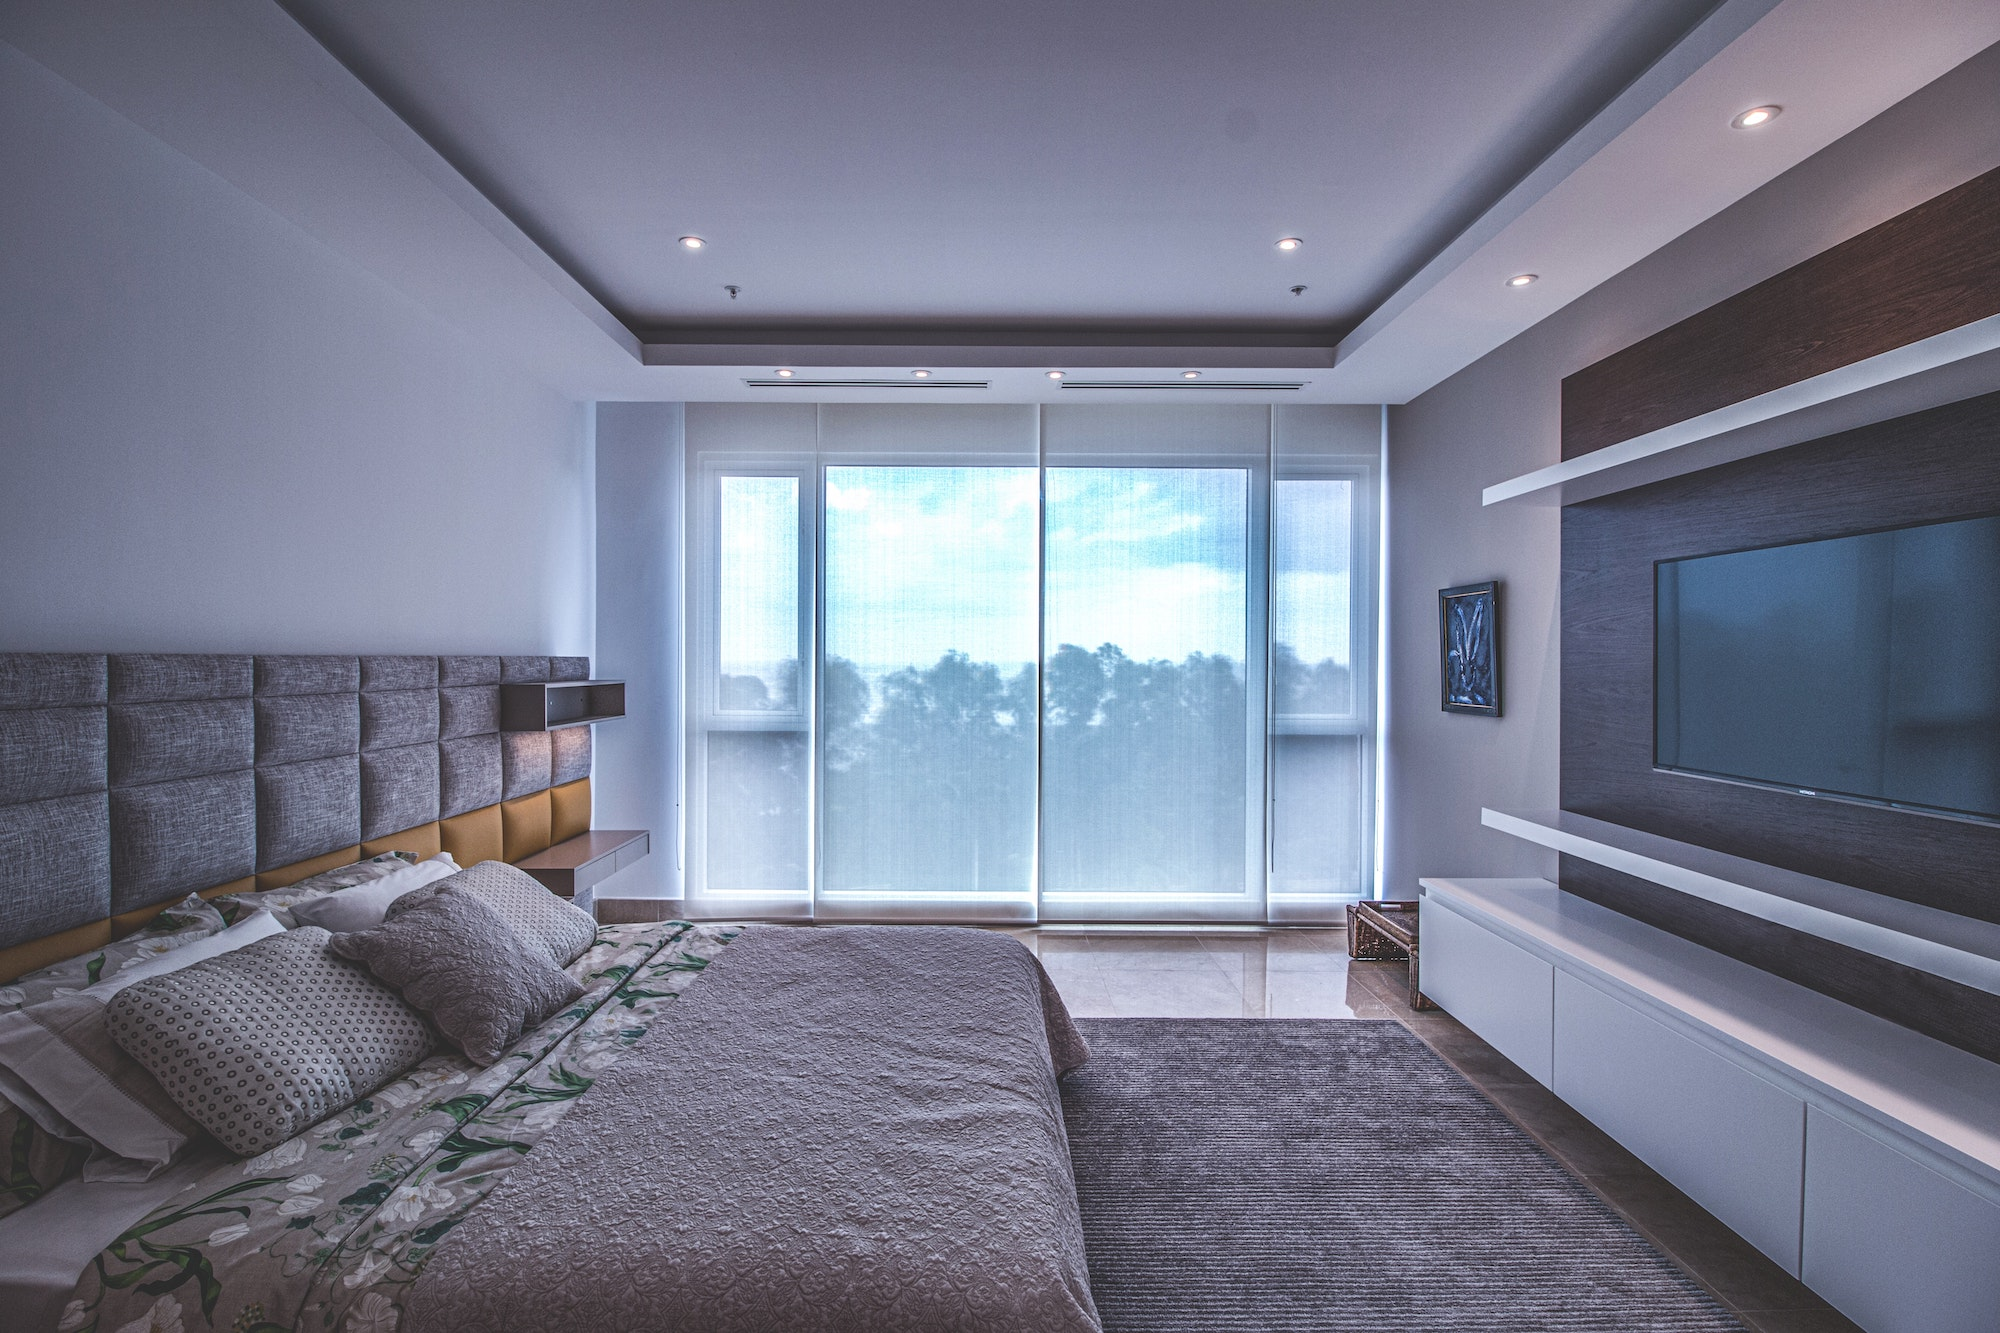 How to create a luxurious bedroom in your home   Home Interior   Elle Blonde Luxury Lifestyle Destination Blog